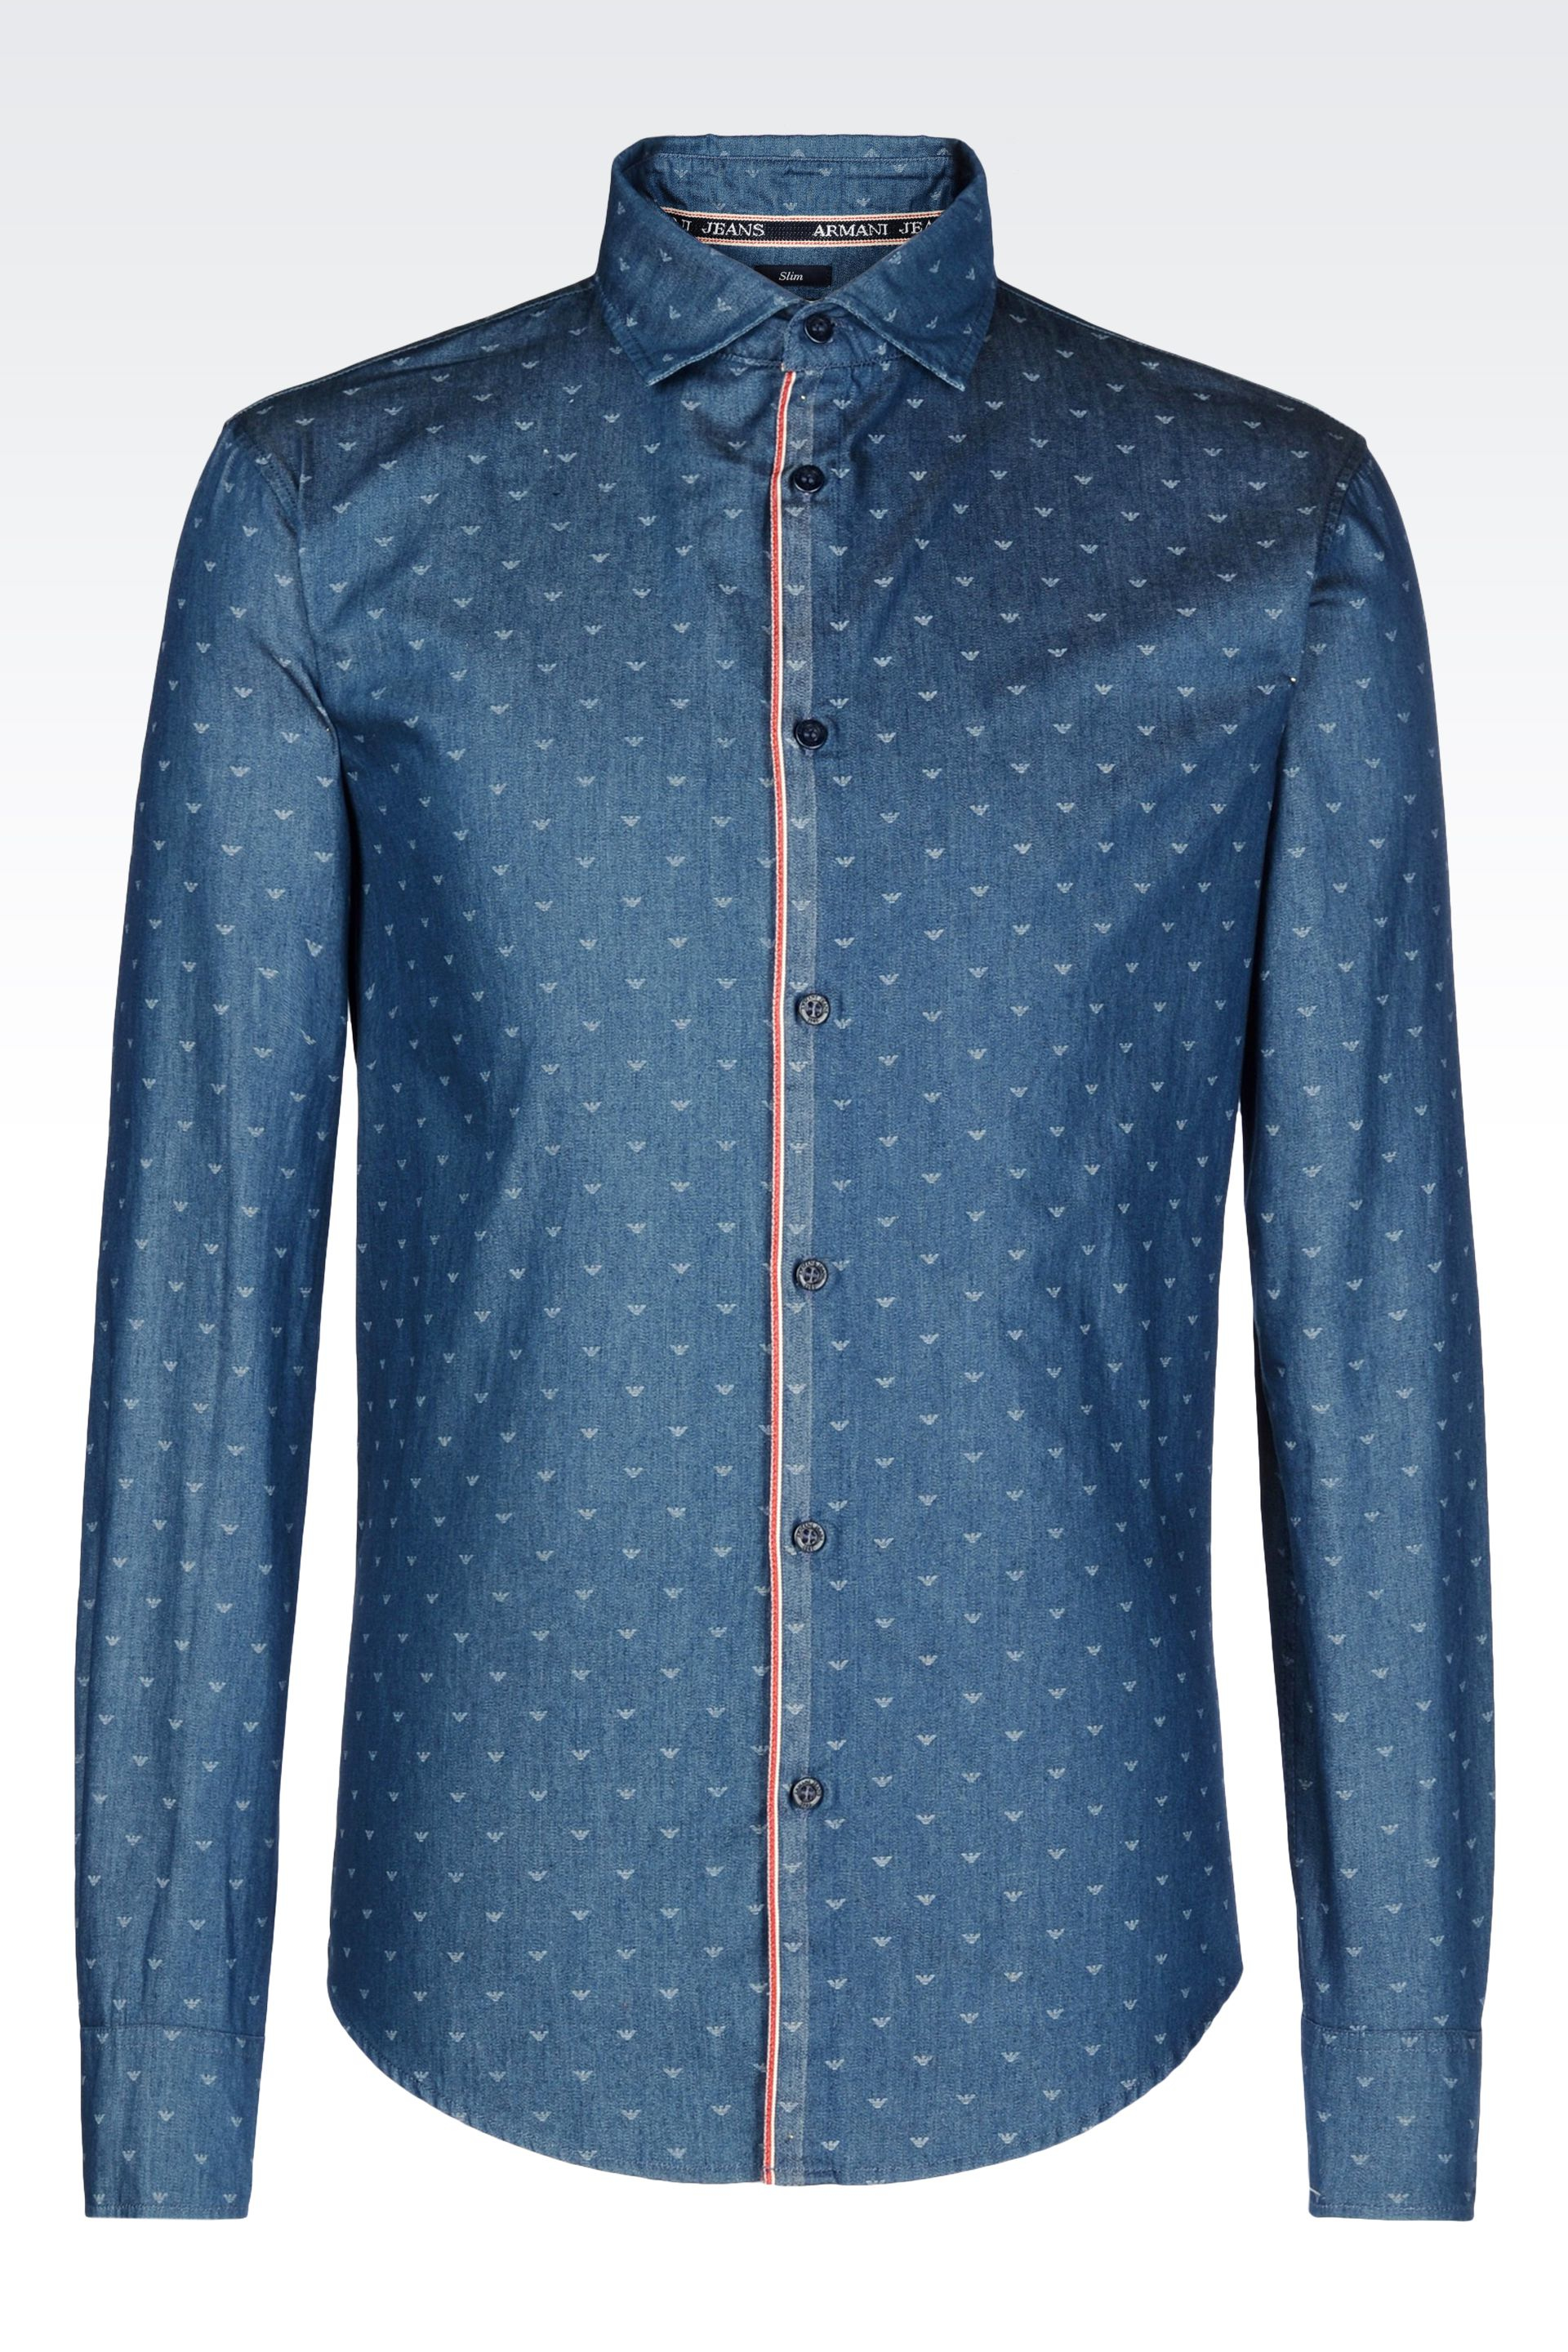 Buy the latest denim shirt patterns cheap shop fashion style with free shipping, and check out our daily updated new arrival denim shirt patterns at atrociouslf.gq